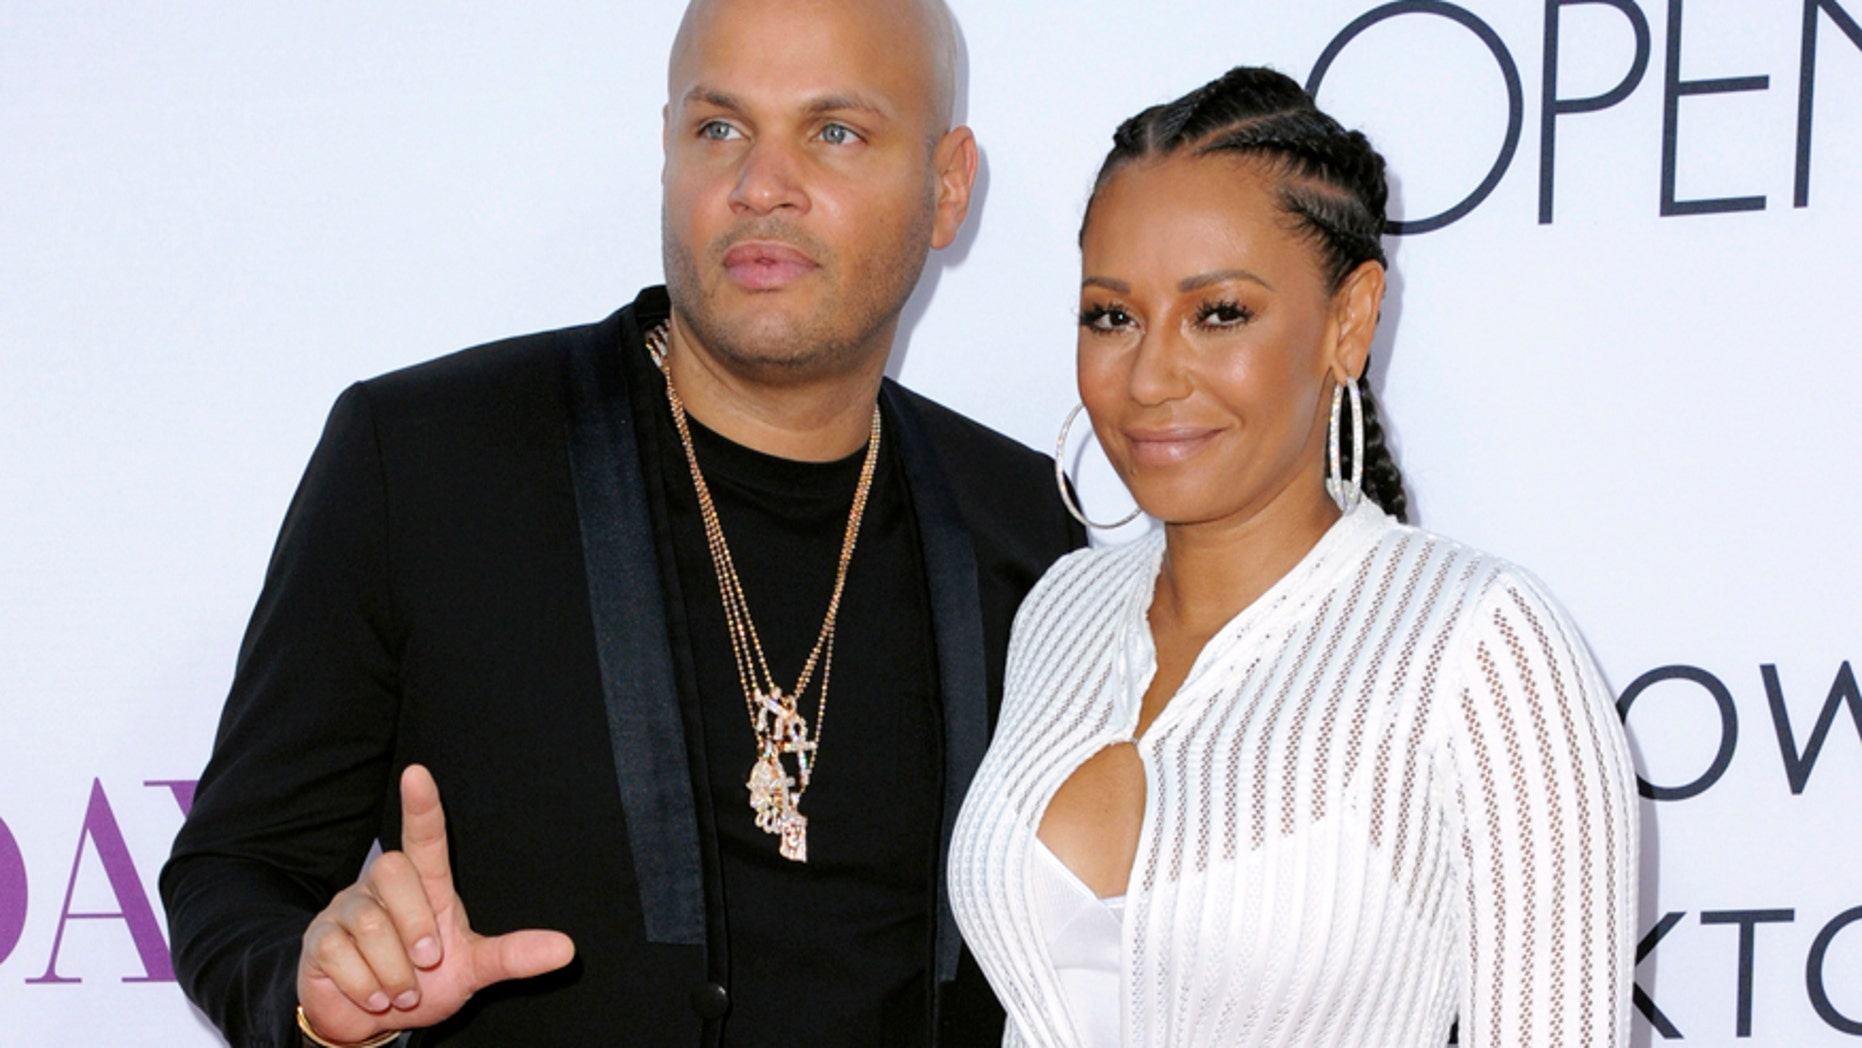 """In this April 13, 2016 file photo, Stephen Belafonte, left, and his wife Melanie Brown arrive at the Los Angeles premiere of """"Mother's Day."""" Court records in Los Angeles show the singer and """"America's Got Talent"""" judge filed for divorce from her husband of nearly 10 years, Stephen Belafonte,on Monday, March 20, 2017."""